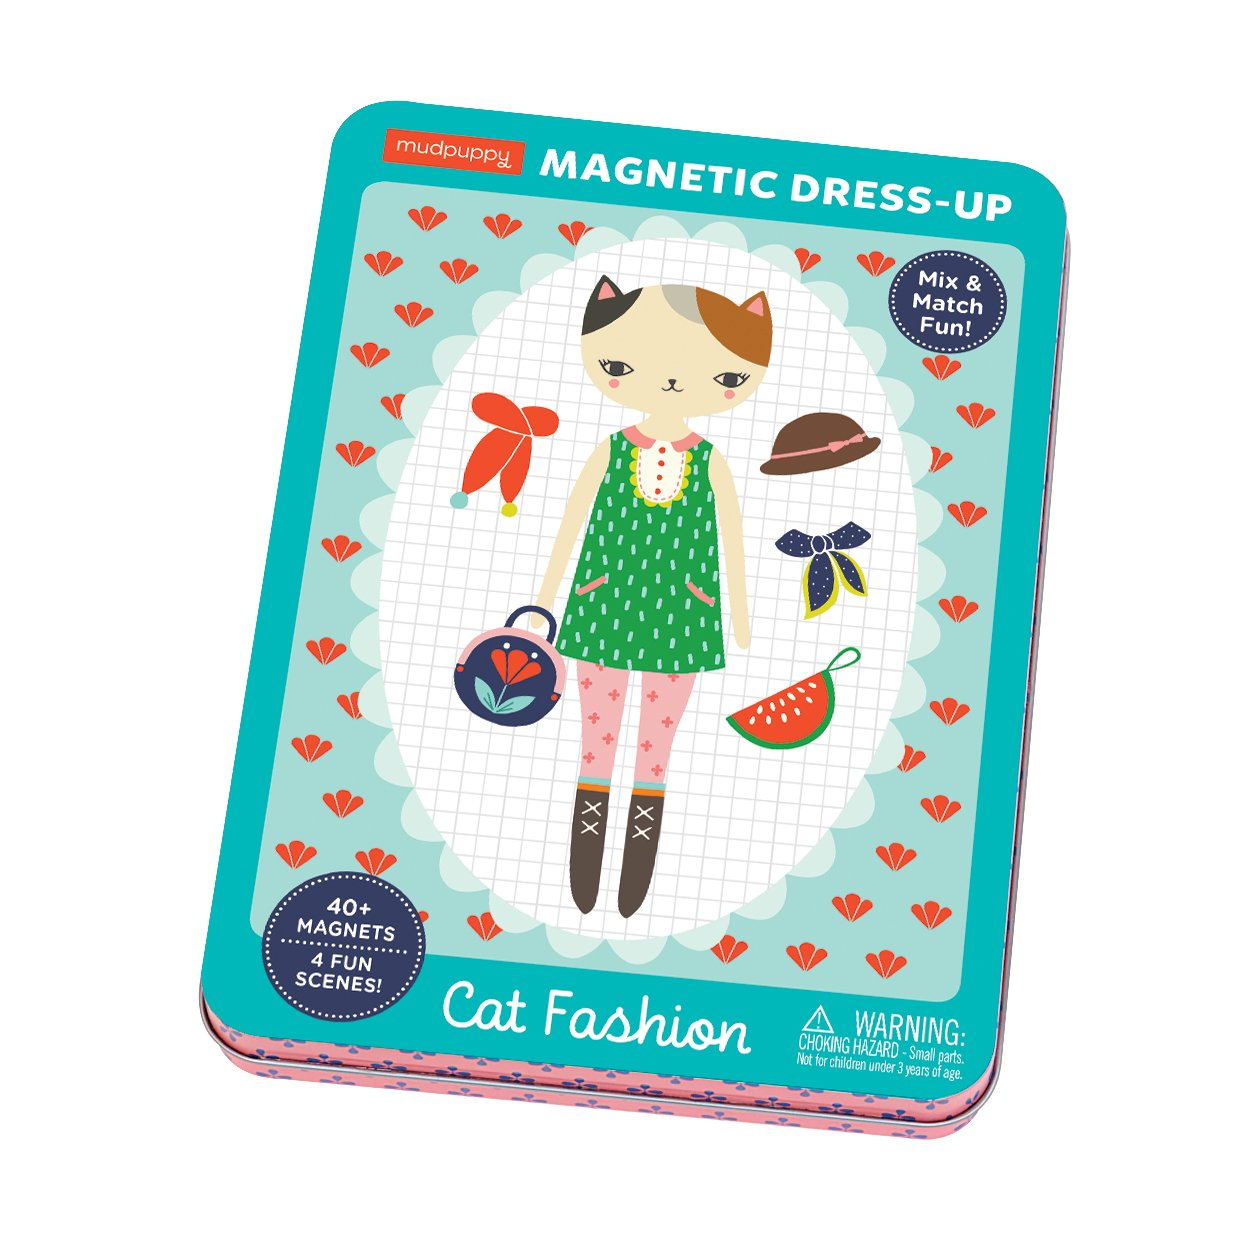 Mudpuppy Cat Fashion Magnetic Dress-Up Doll, for Age 4+, Magnetic Tin Play Set with Fun Scenes, 40+ Magnets to Dress Up Cute Kitty Friends, Great for Travel and Quiet Time by Mudpuppy